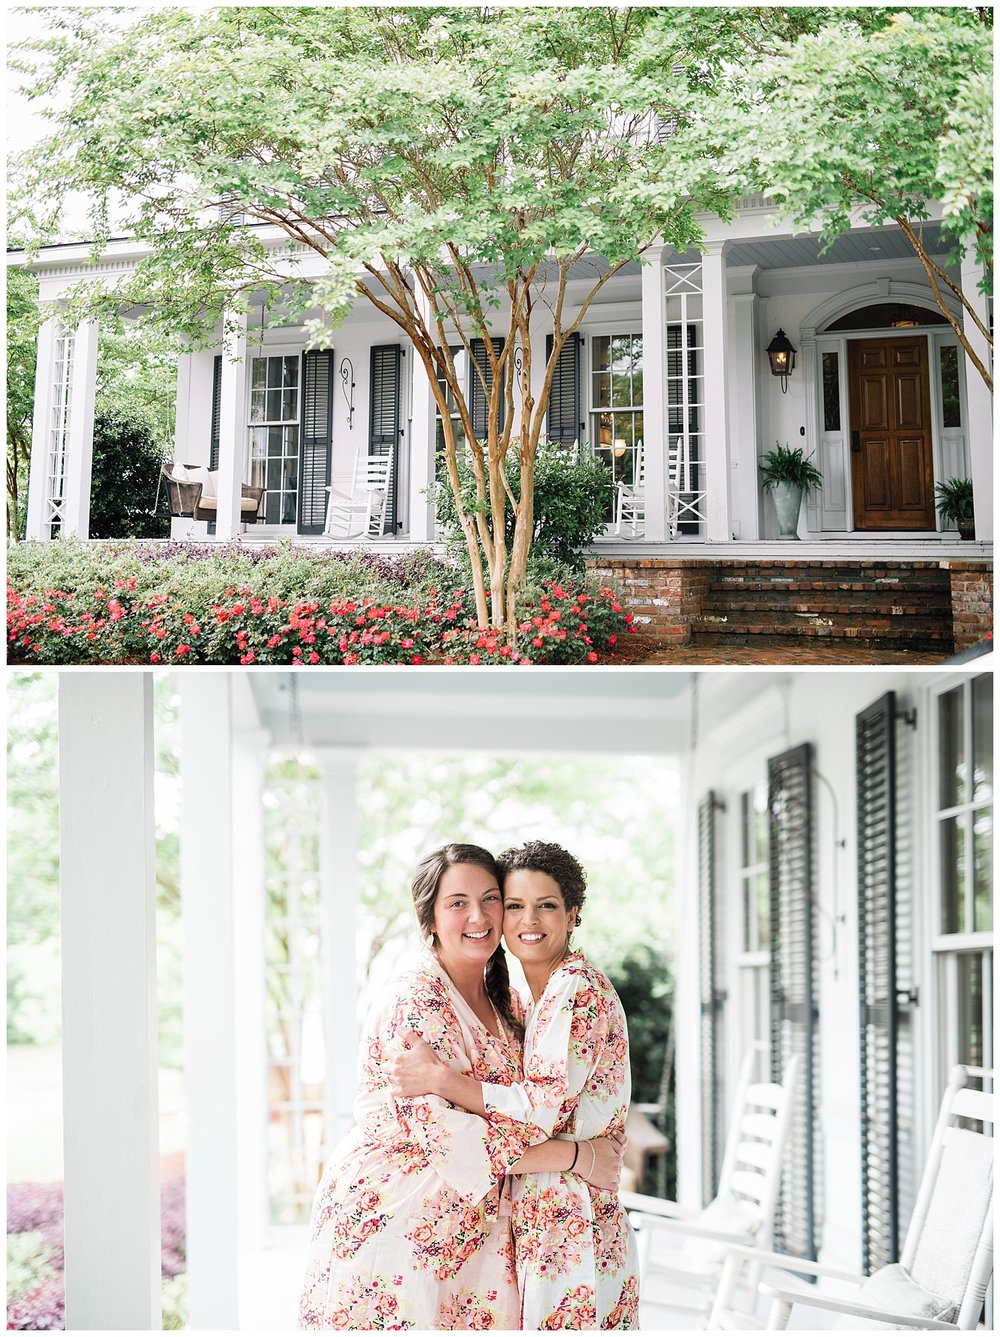 Lakyn rented this GORGEOUS house to get ready at & I'm so glad she did! The home had southern elegance written all over it. The girls snuggled on couches as they got ready and wore these adorable robes.